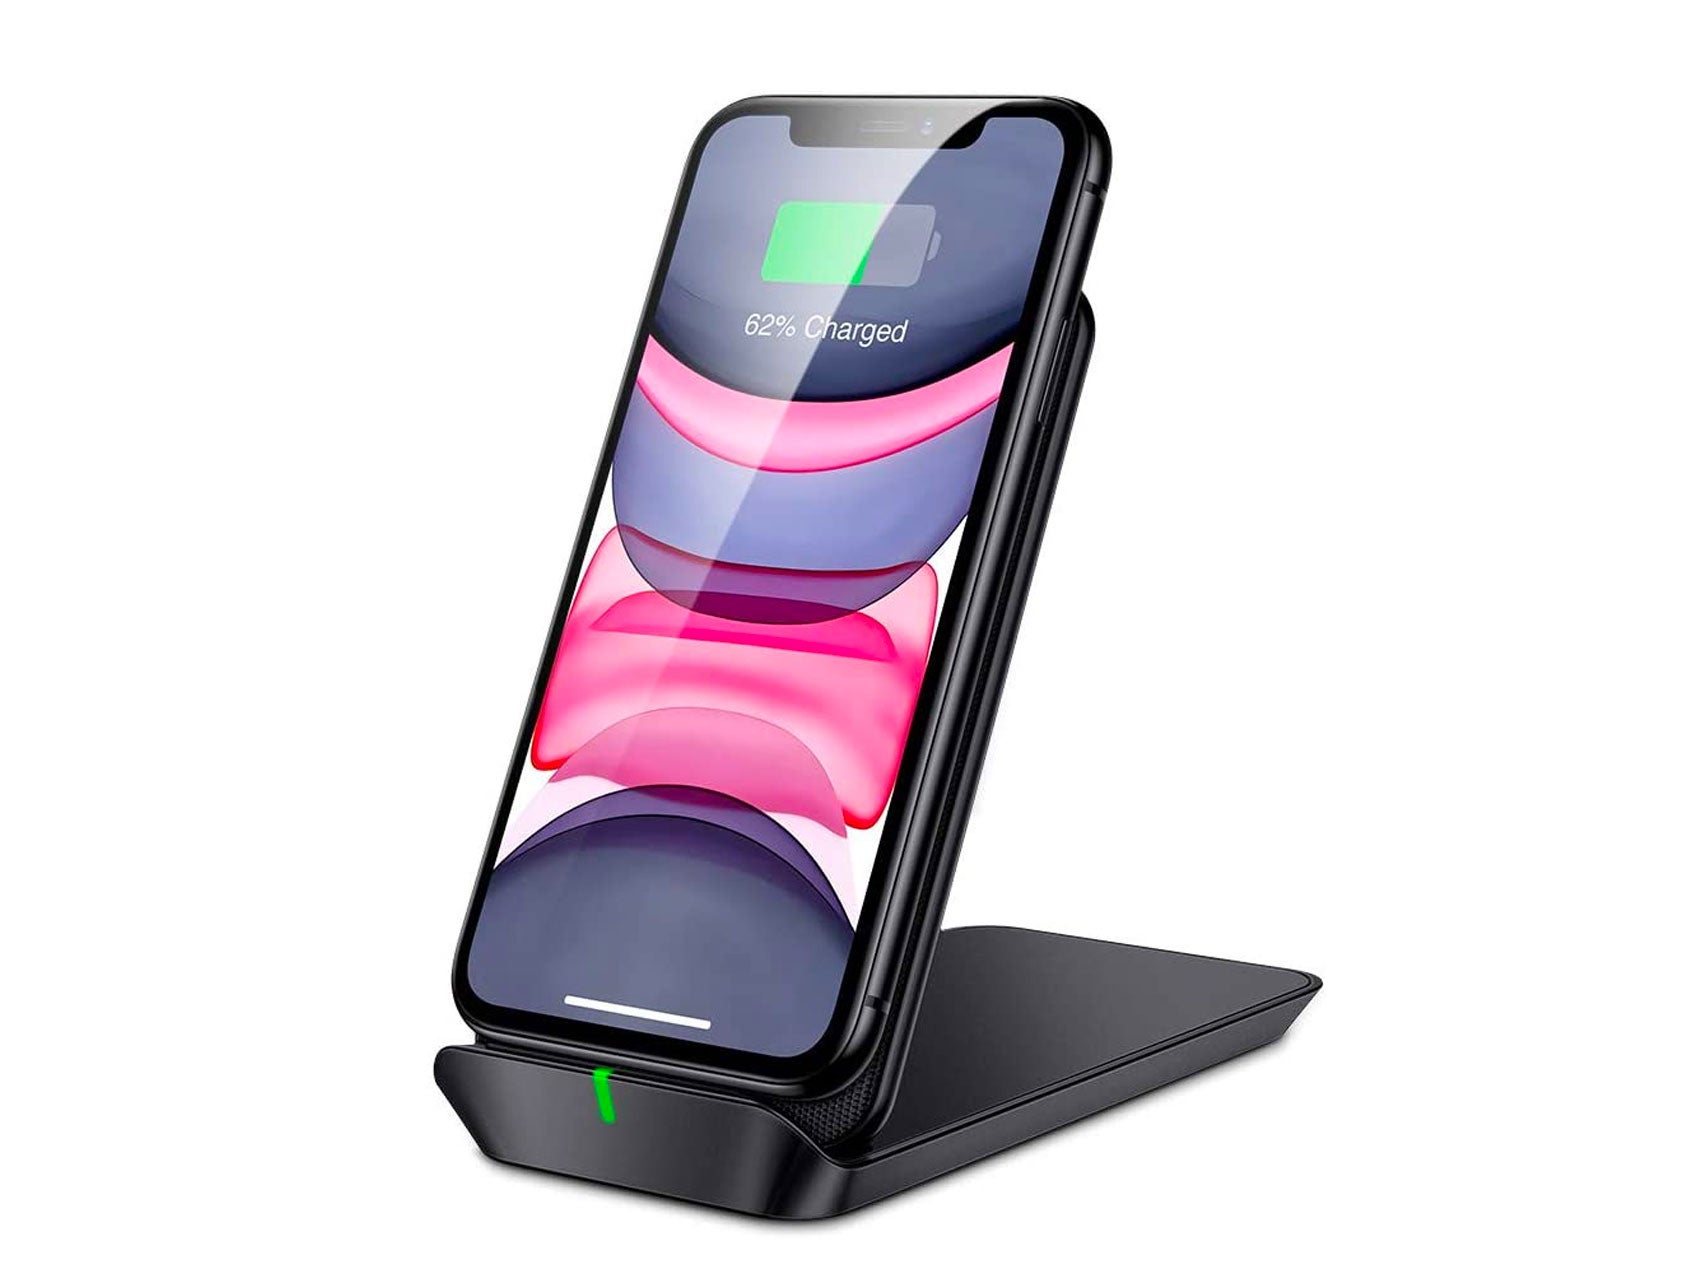 ESR Wireless iPhone Charger Stand - [7.5W/10W] Foldable Shift Fast Wireless Lightning Charging Stand & Pad, Compatible with iPhone 12/12 Mini/12 Pro/12 Pro Max/11/XR/XS/X/8, Galaxy S9/S8 and More